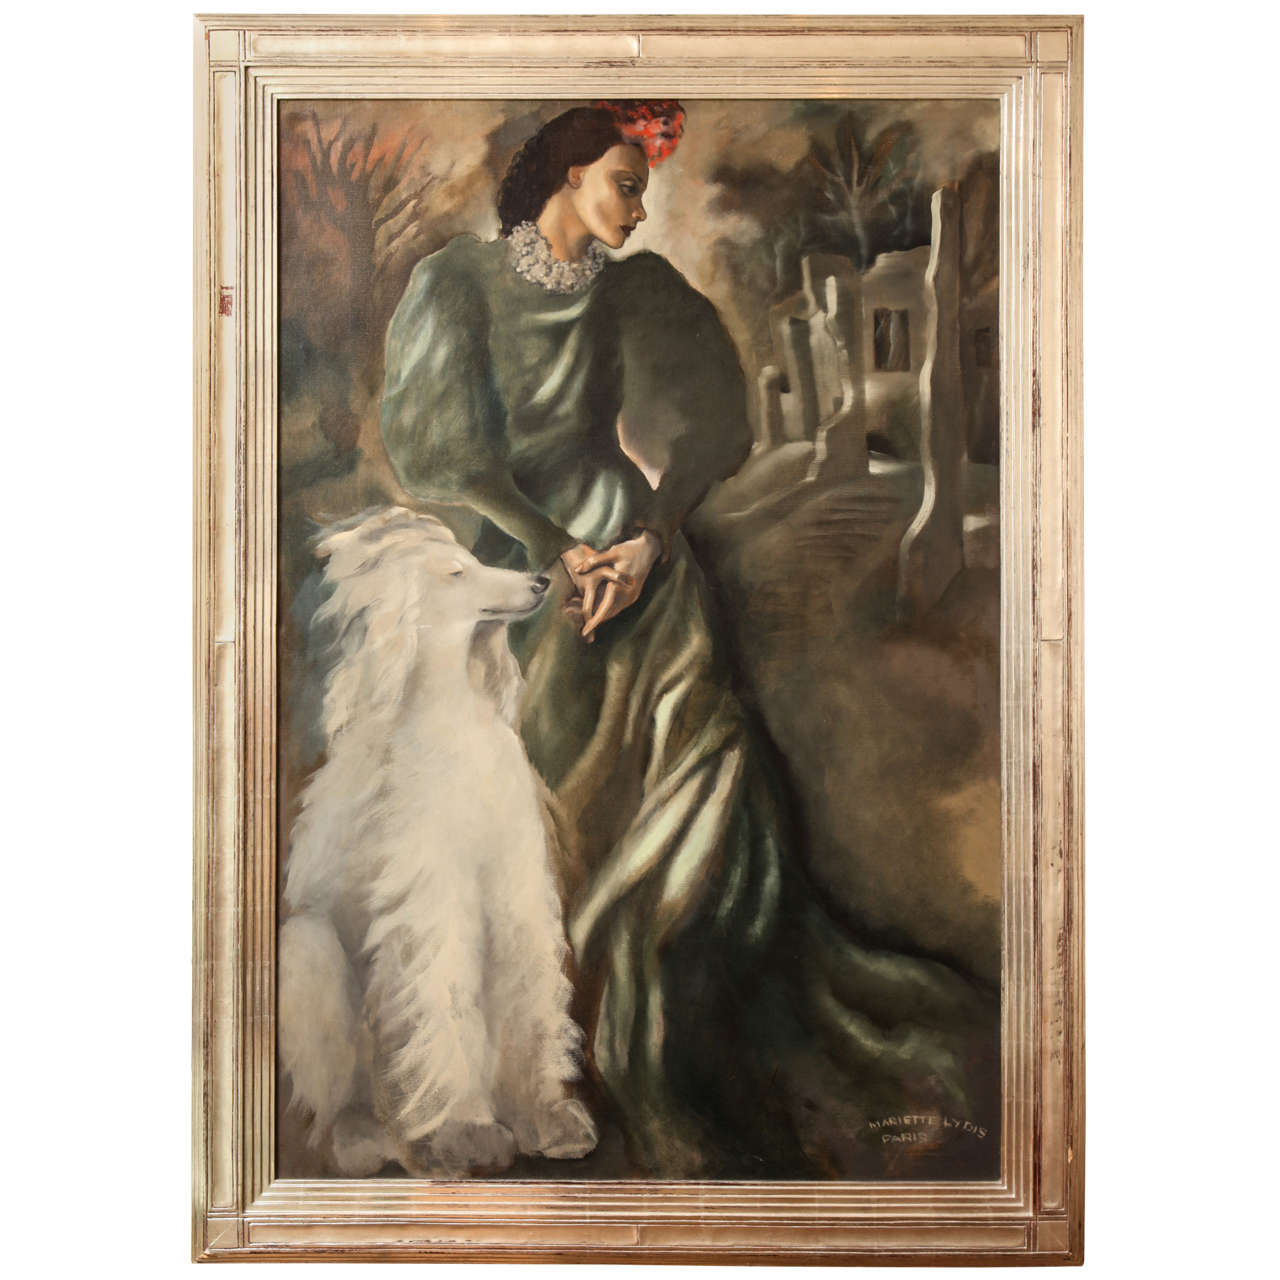 Large art deco painting by mariette lydis at 1stdibs for Art deco era dates